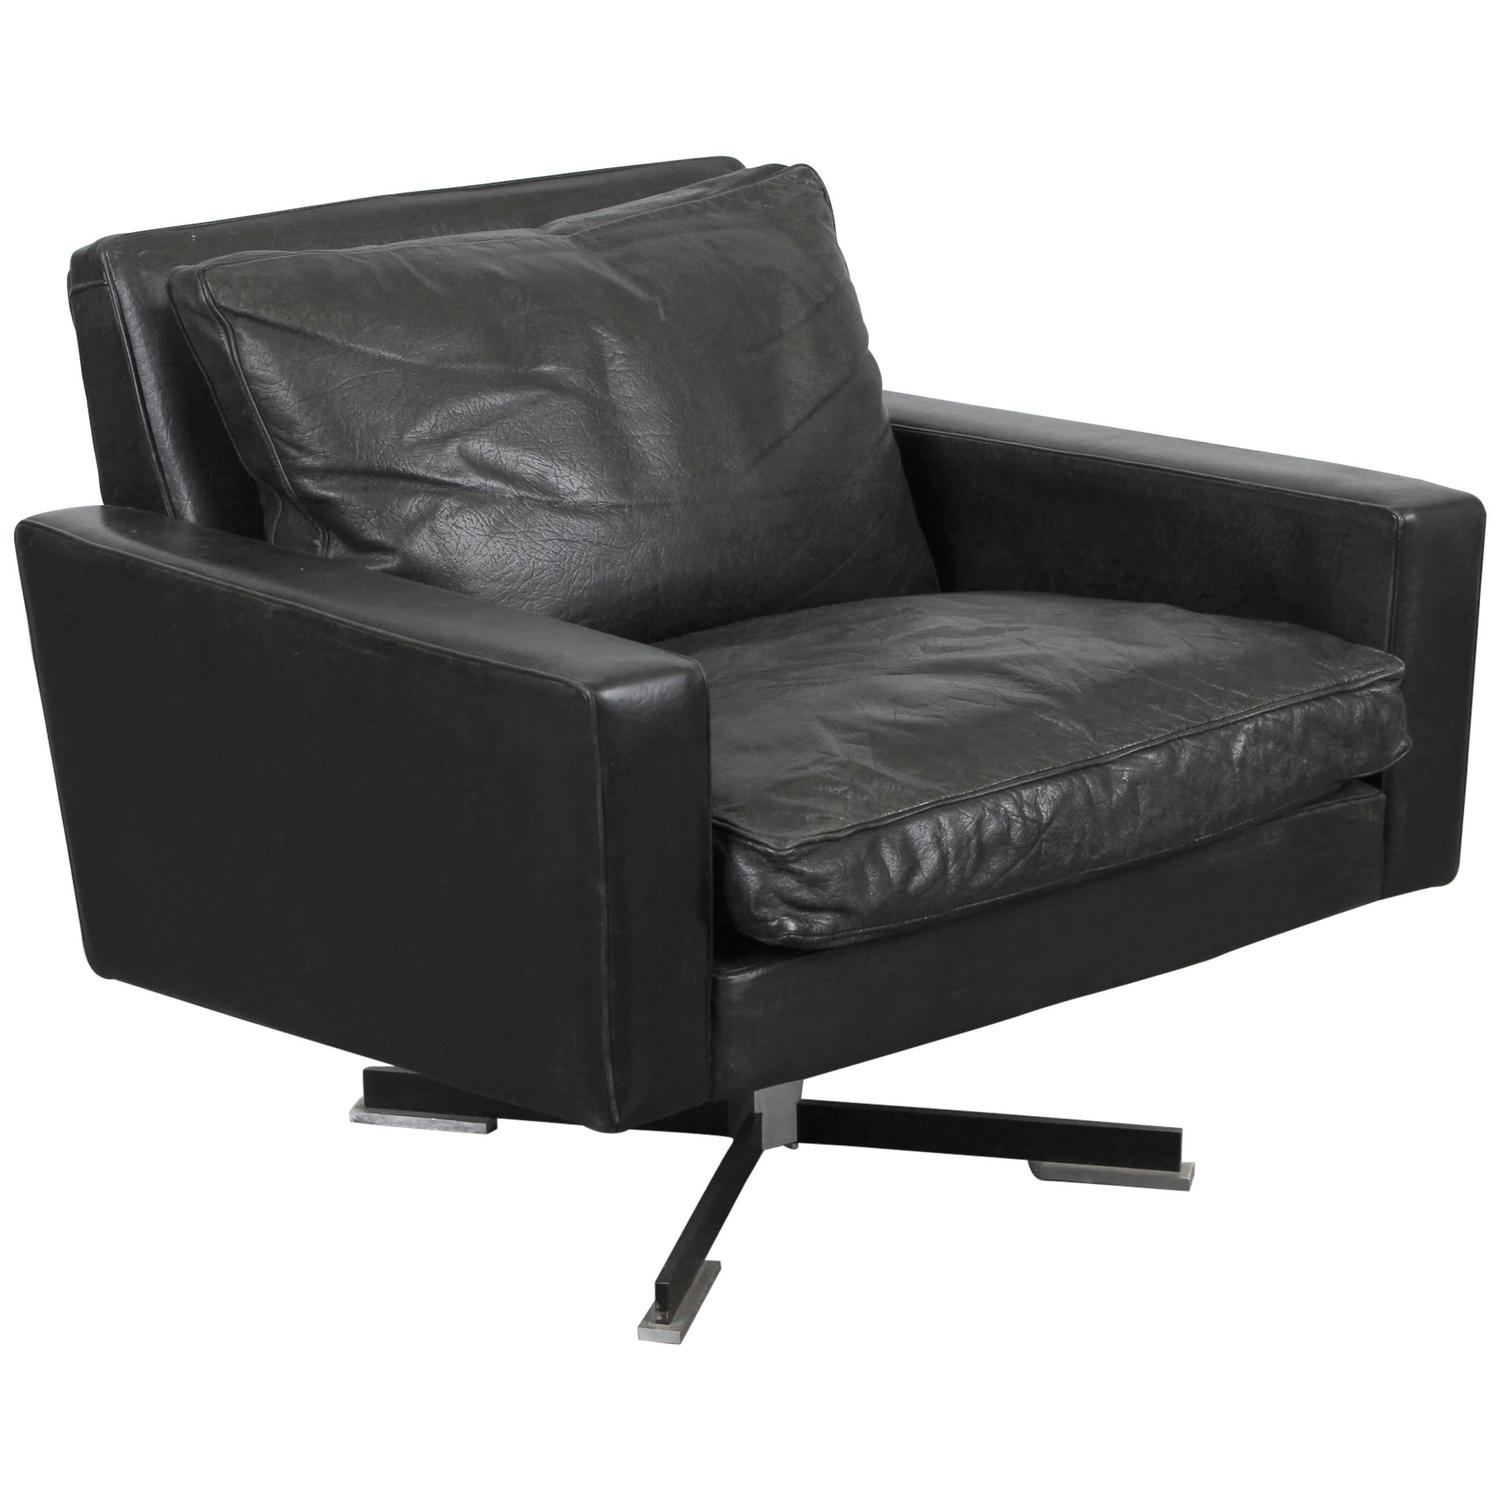 modern black leather recliner chair covers and sashes liverpool mid century swivel for sale at